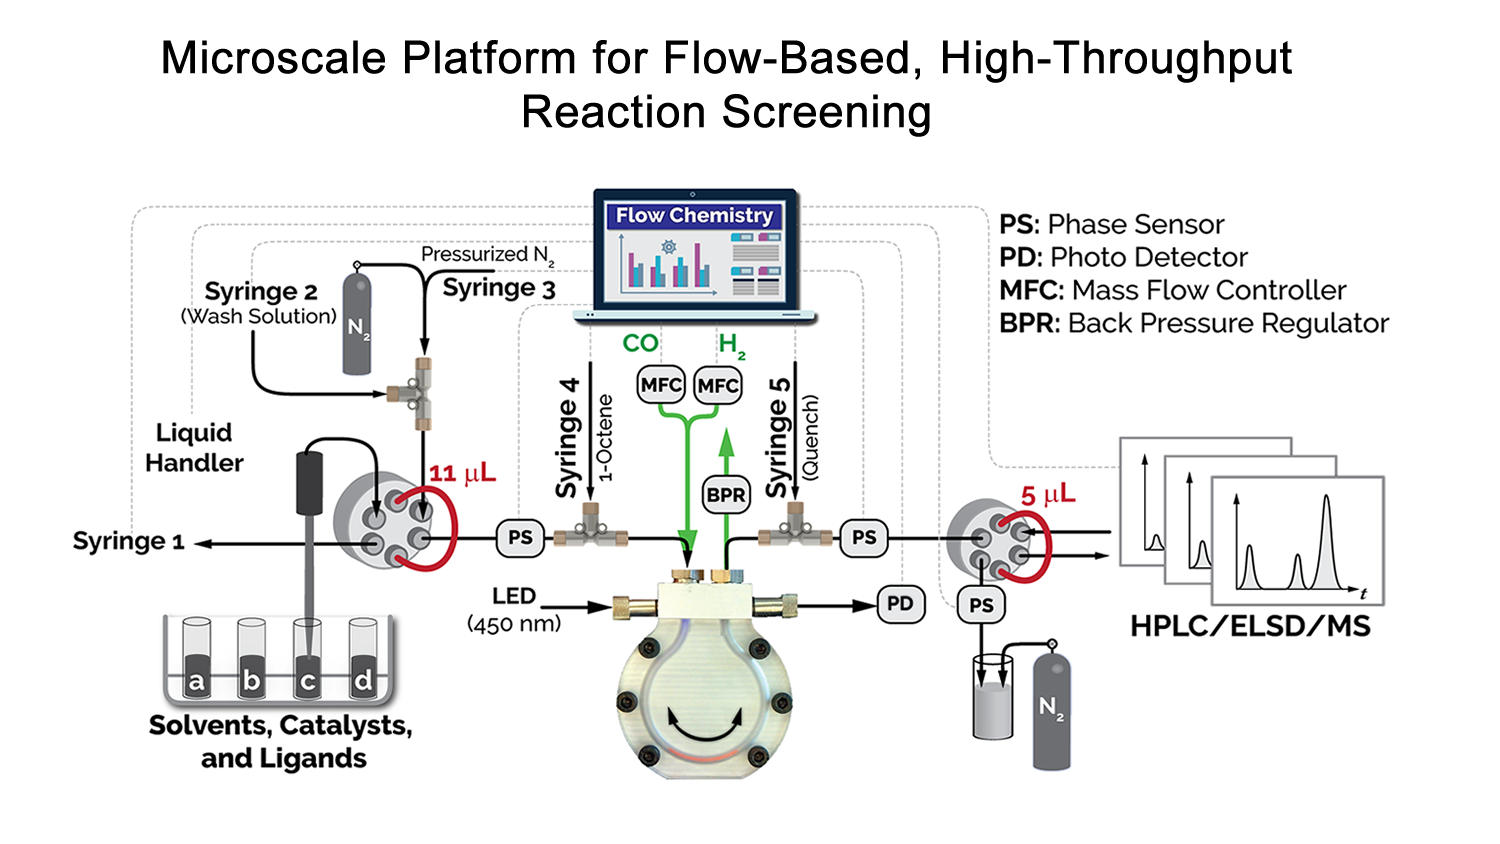 Platform for High-Throughput Reaction Screening